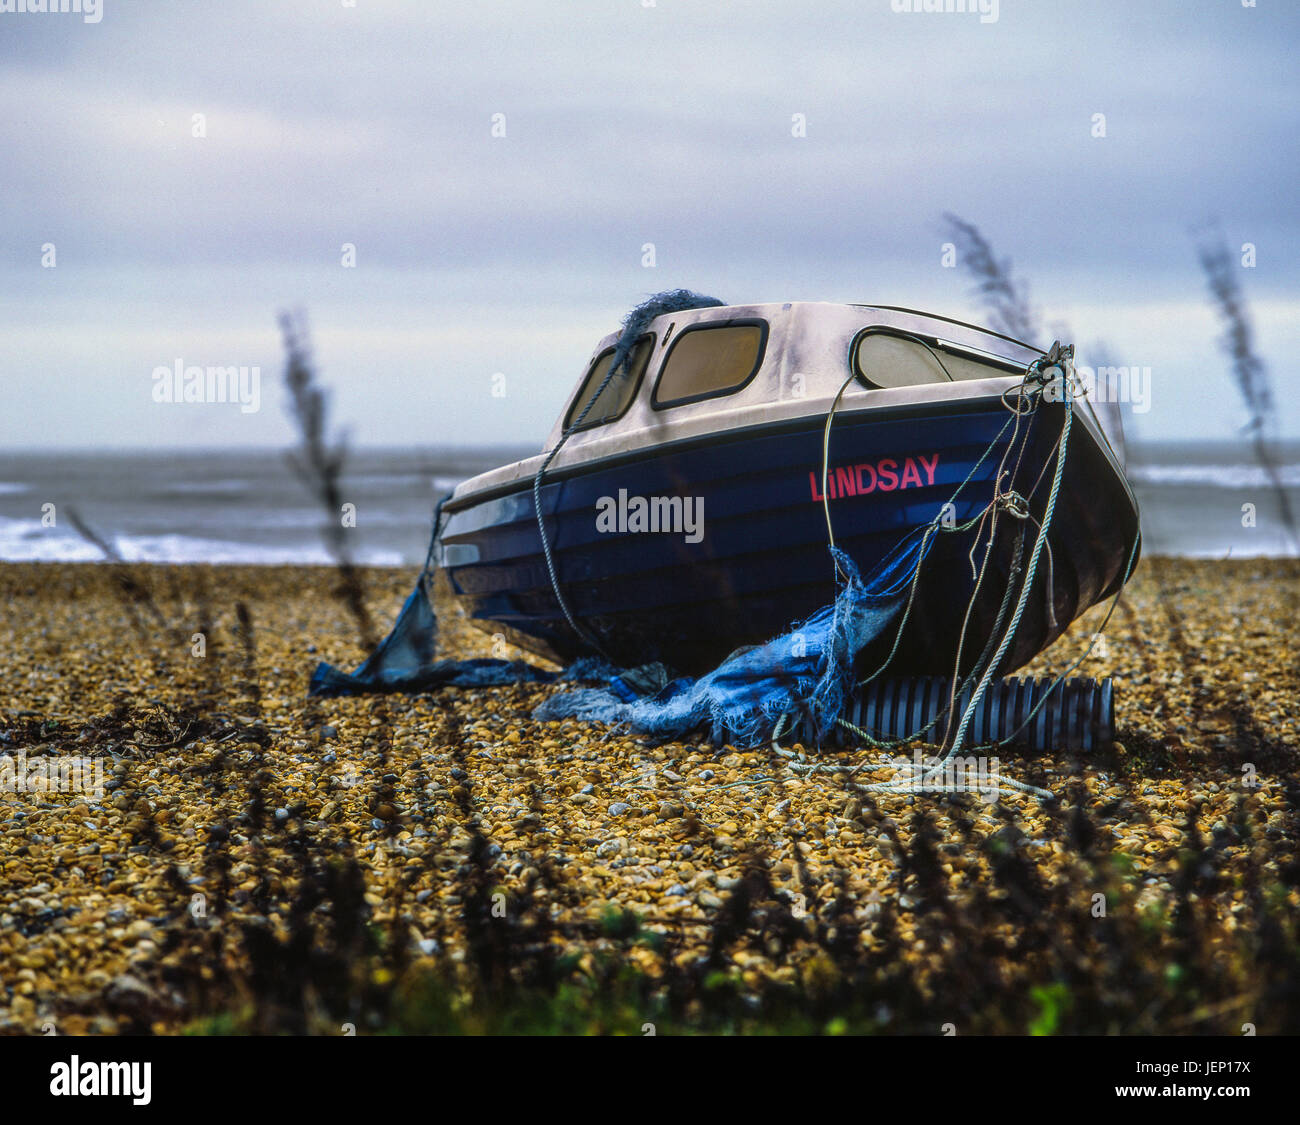 Boat left abandoned on beach, photographed with a Mamiya